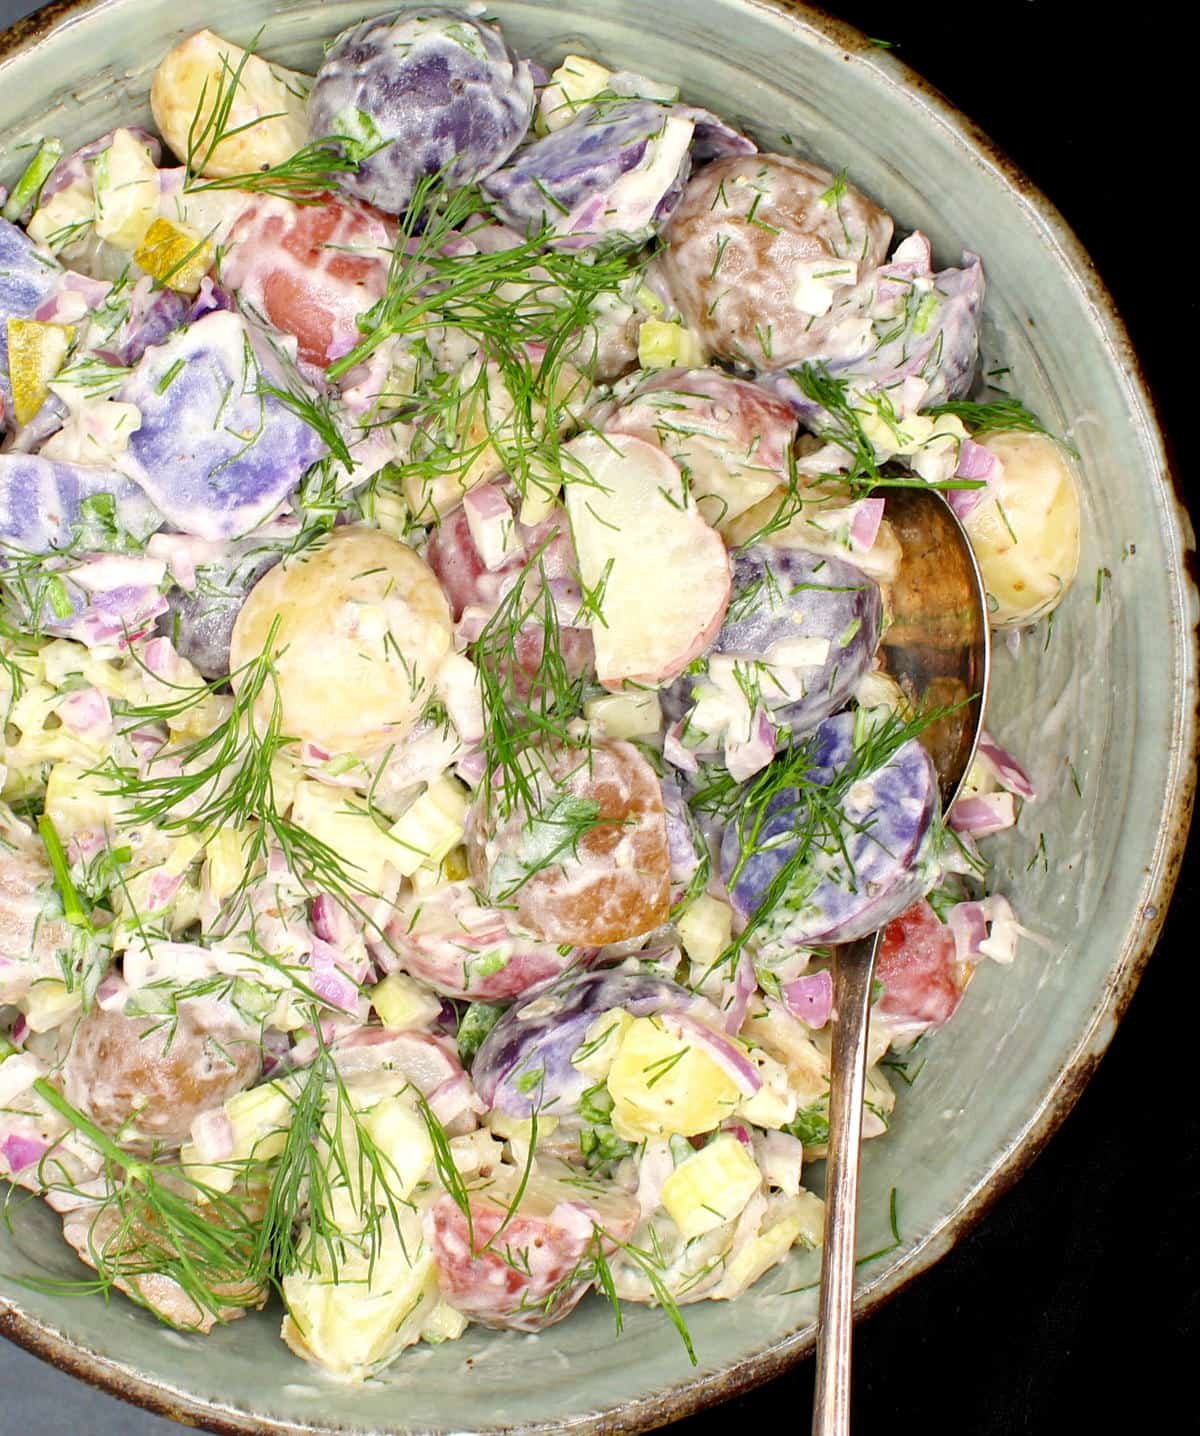 Photo of vegan potato salad in a clay glazed bowl with multicolored baby potatoes, creamy mayo and wisps of dill.